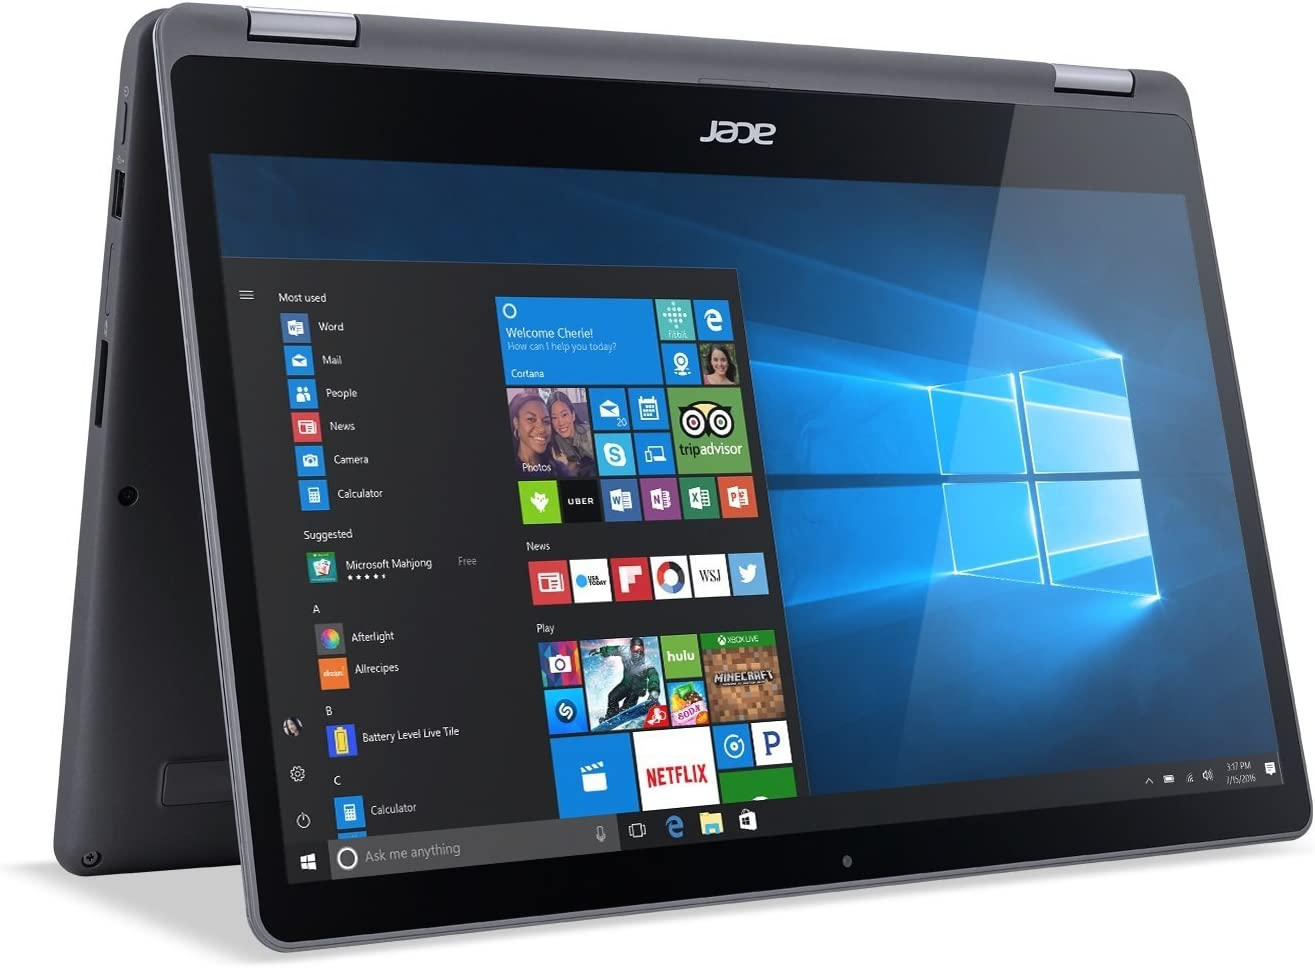 Acer Aspire R 15 Convertible Laptop, 7th Gen Intel Core i5, 15.6in Full HD Touch, 8GB DDR4, 1TB HDD, Steel Gray, R5-571T-57Z0 (Renewed)